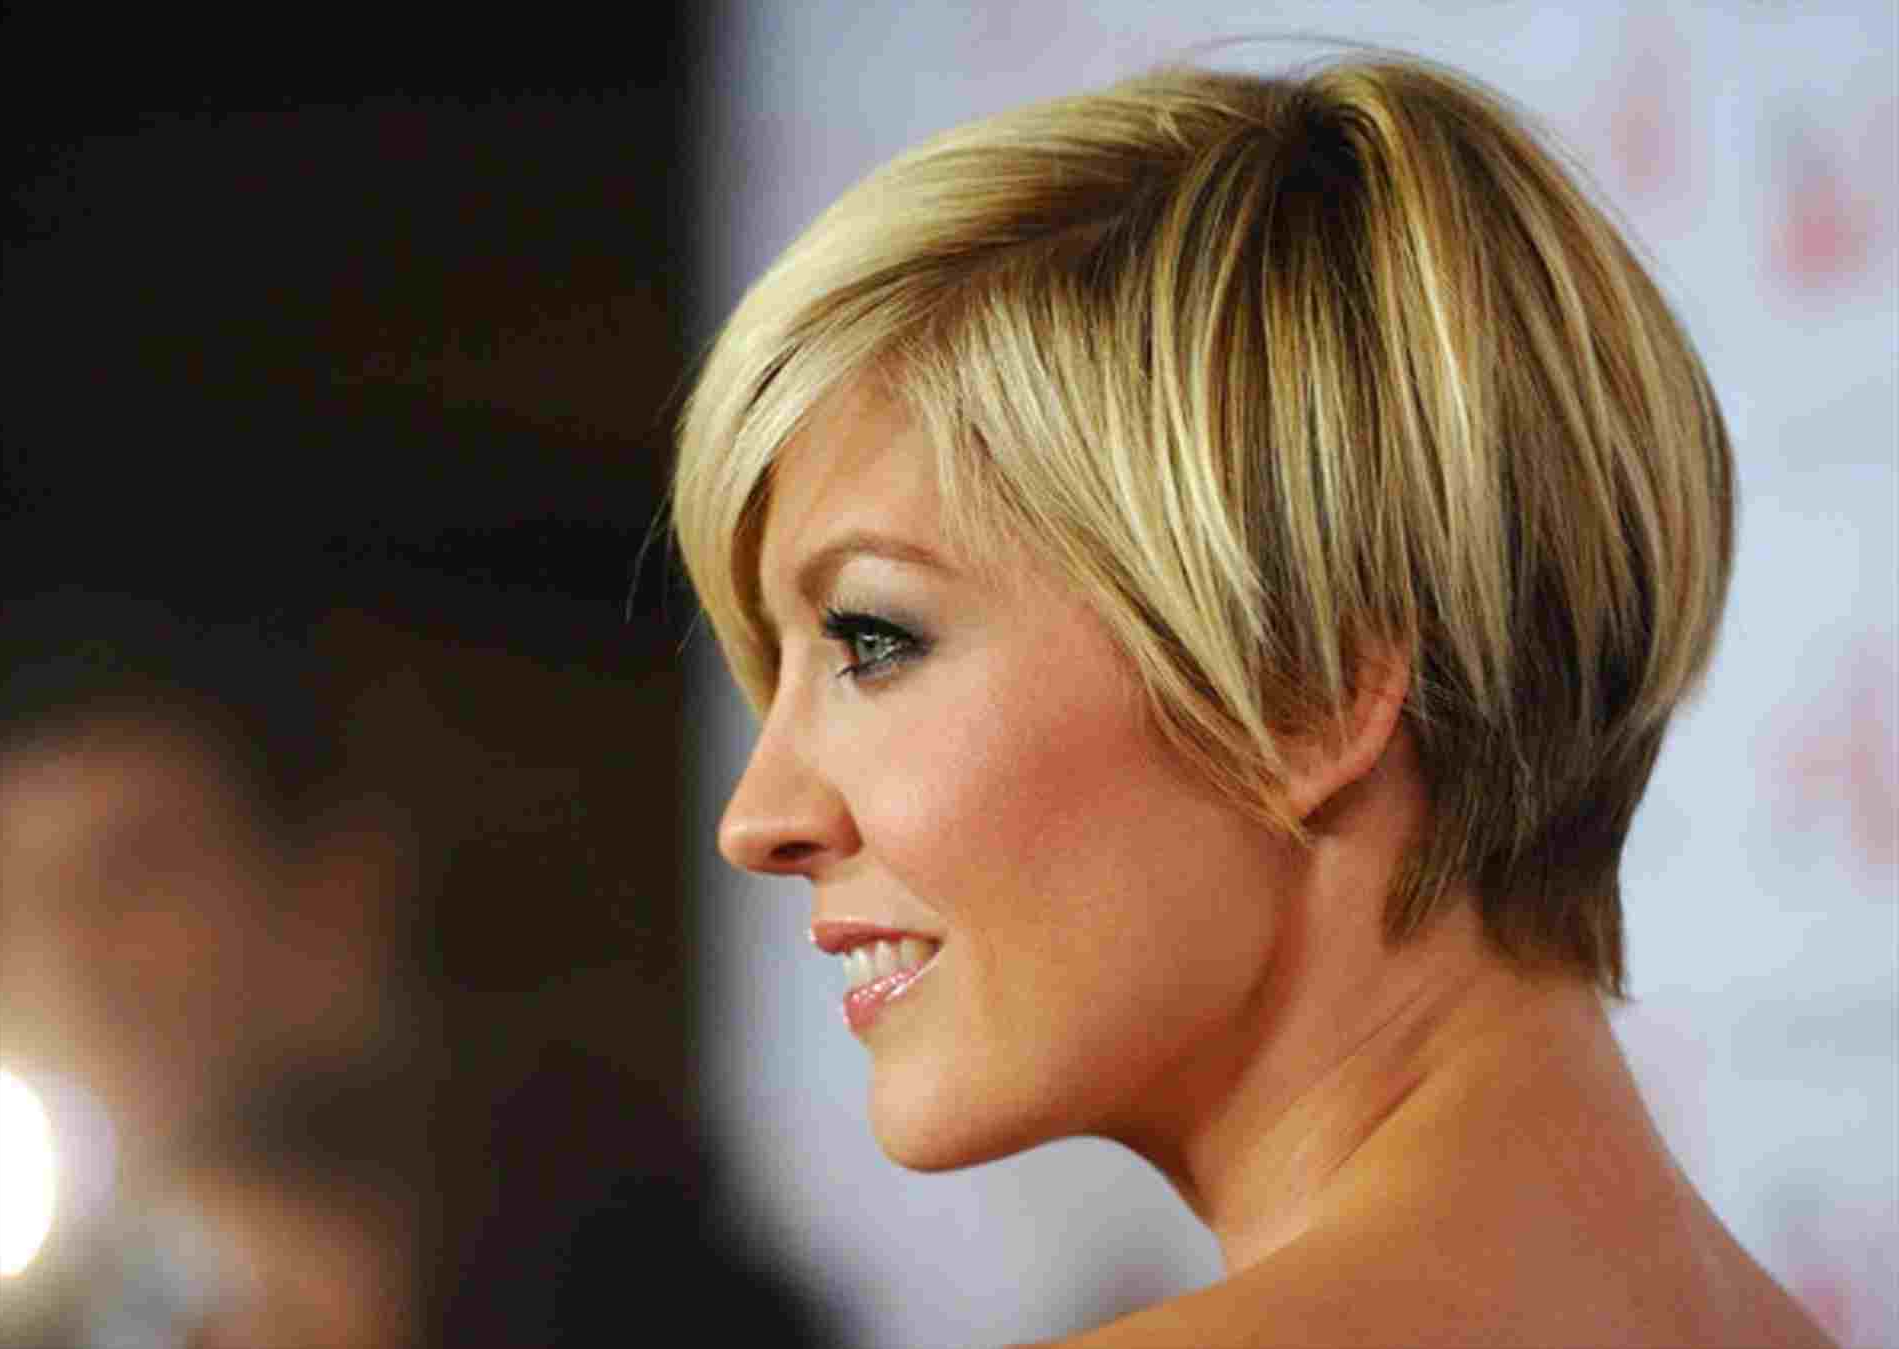 Hairstyles For Fat Women Over 40 Trend Hairstyle And Haircut Throughout Short Hairstyles For Fine Hair Over  (View 12 of 25)